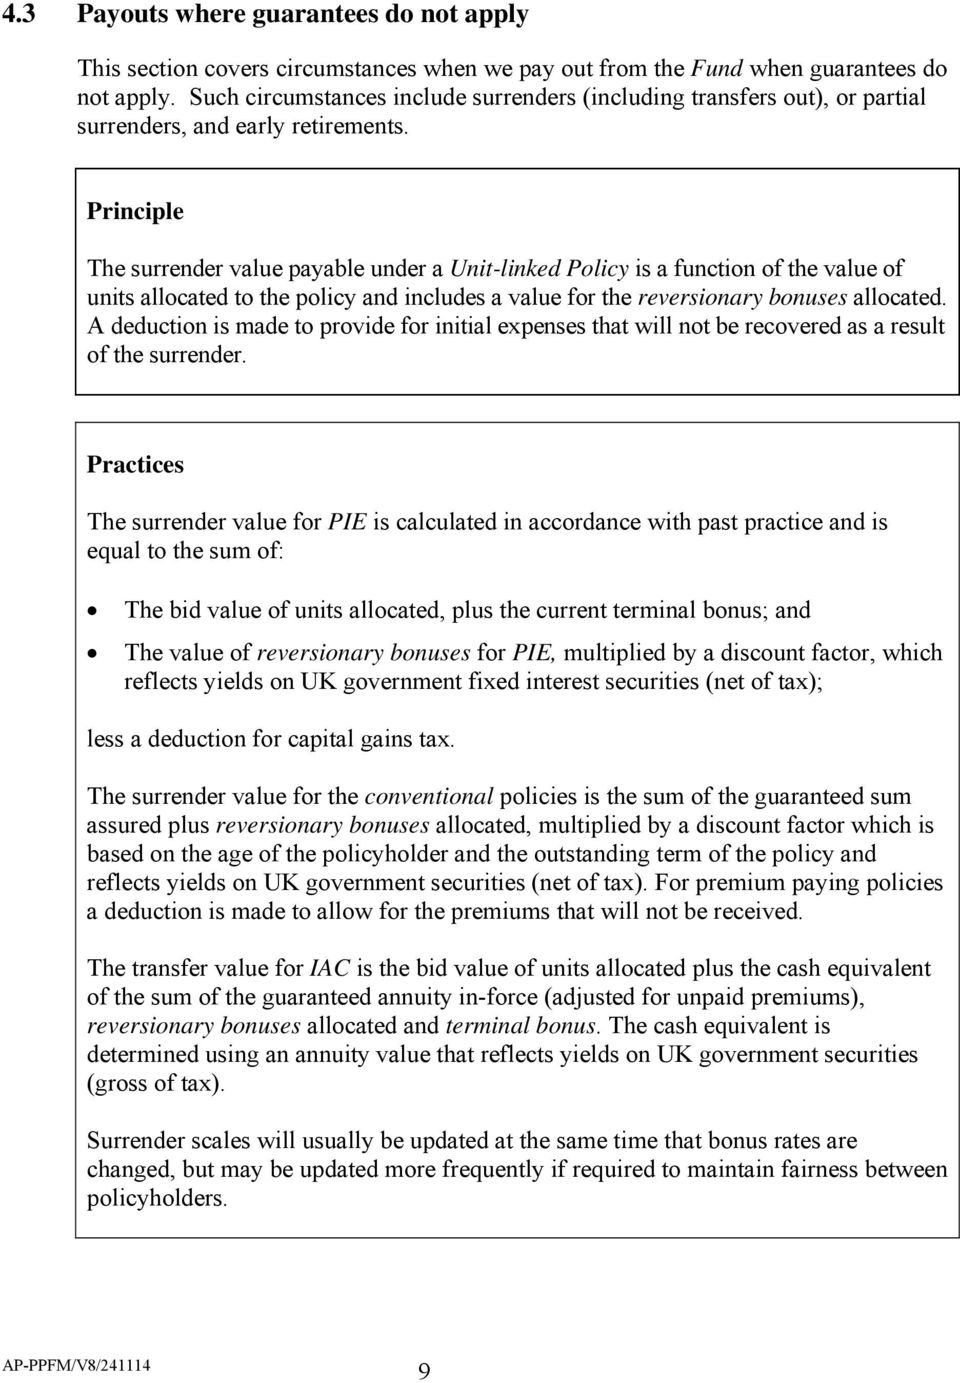 Principle The surrender value payable under a Unit-linked Policy is a function of the value of units allocated to the policy and includes a value for the reversionary bonuses allocated.